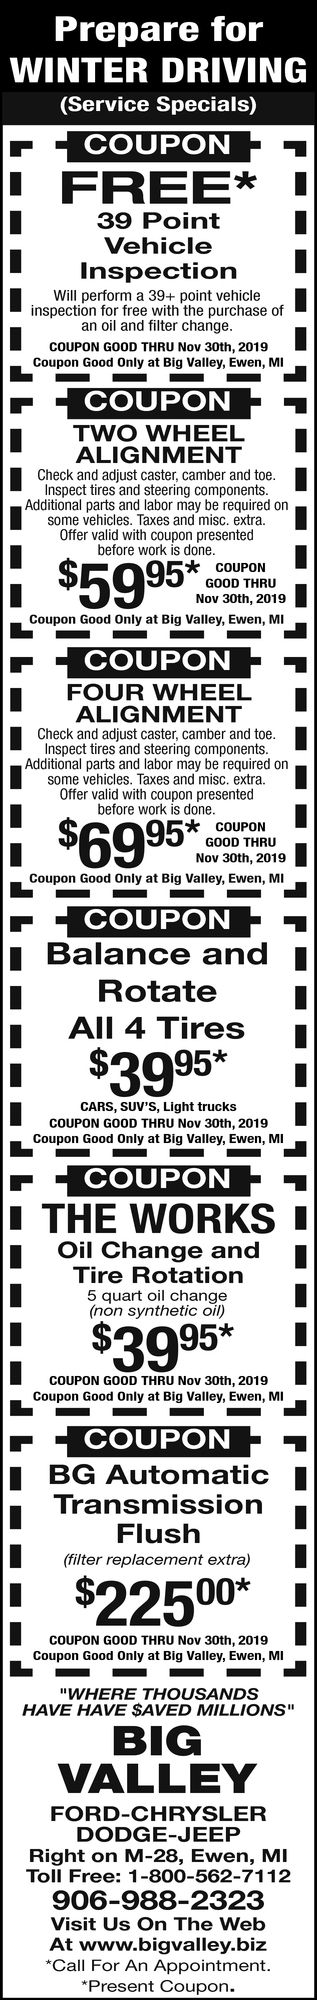 Prepare for Winter Driving Service Specials